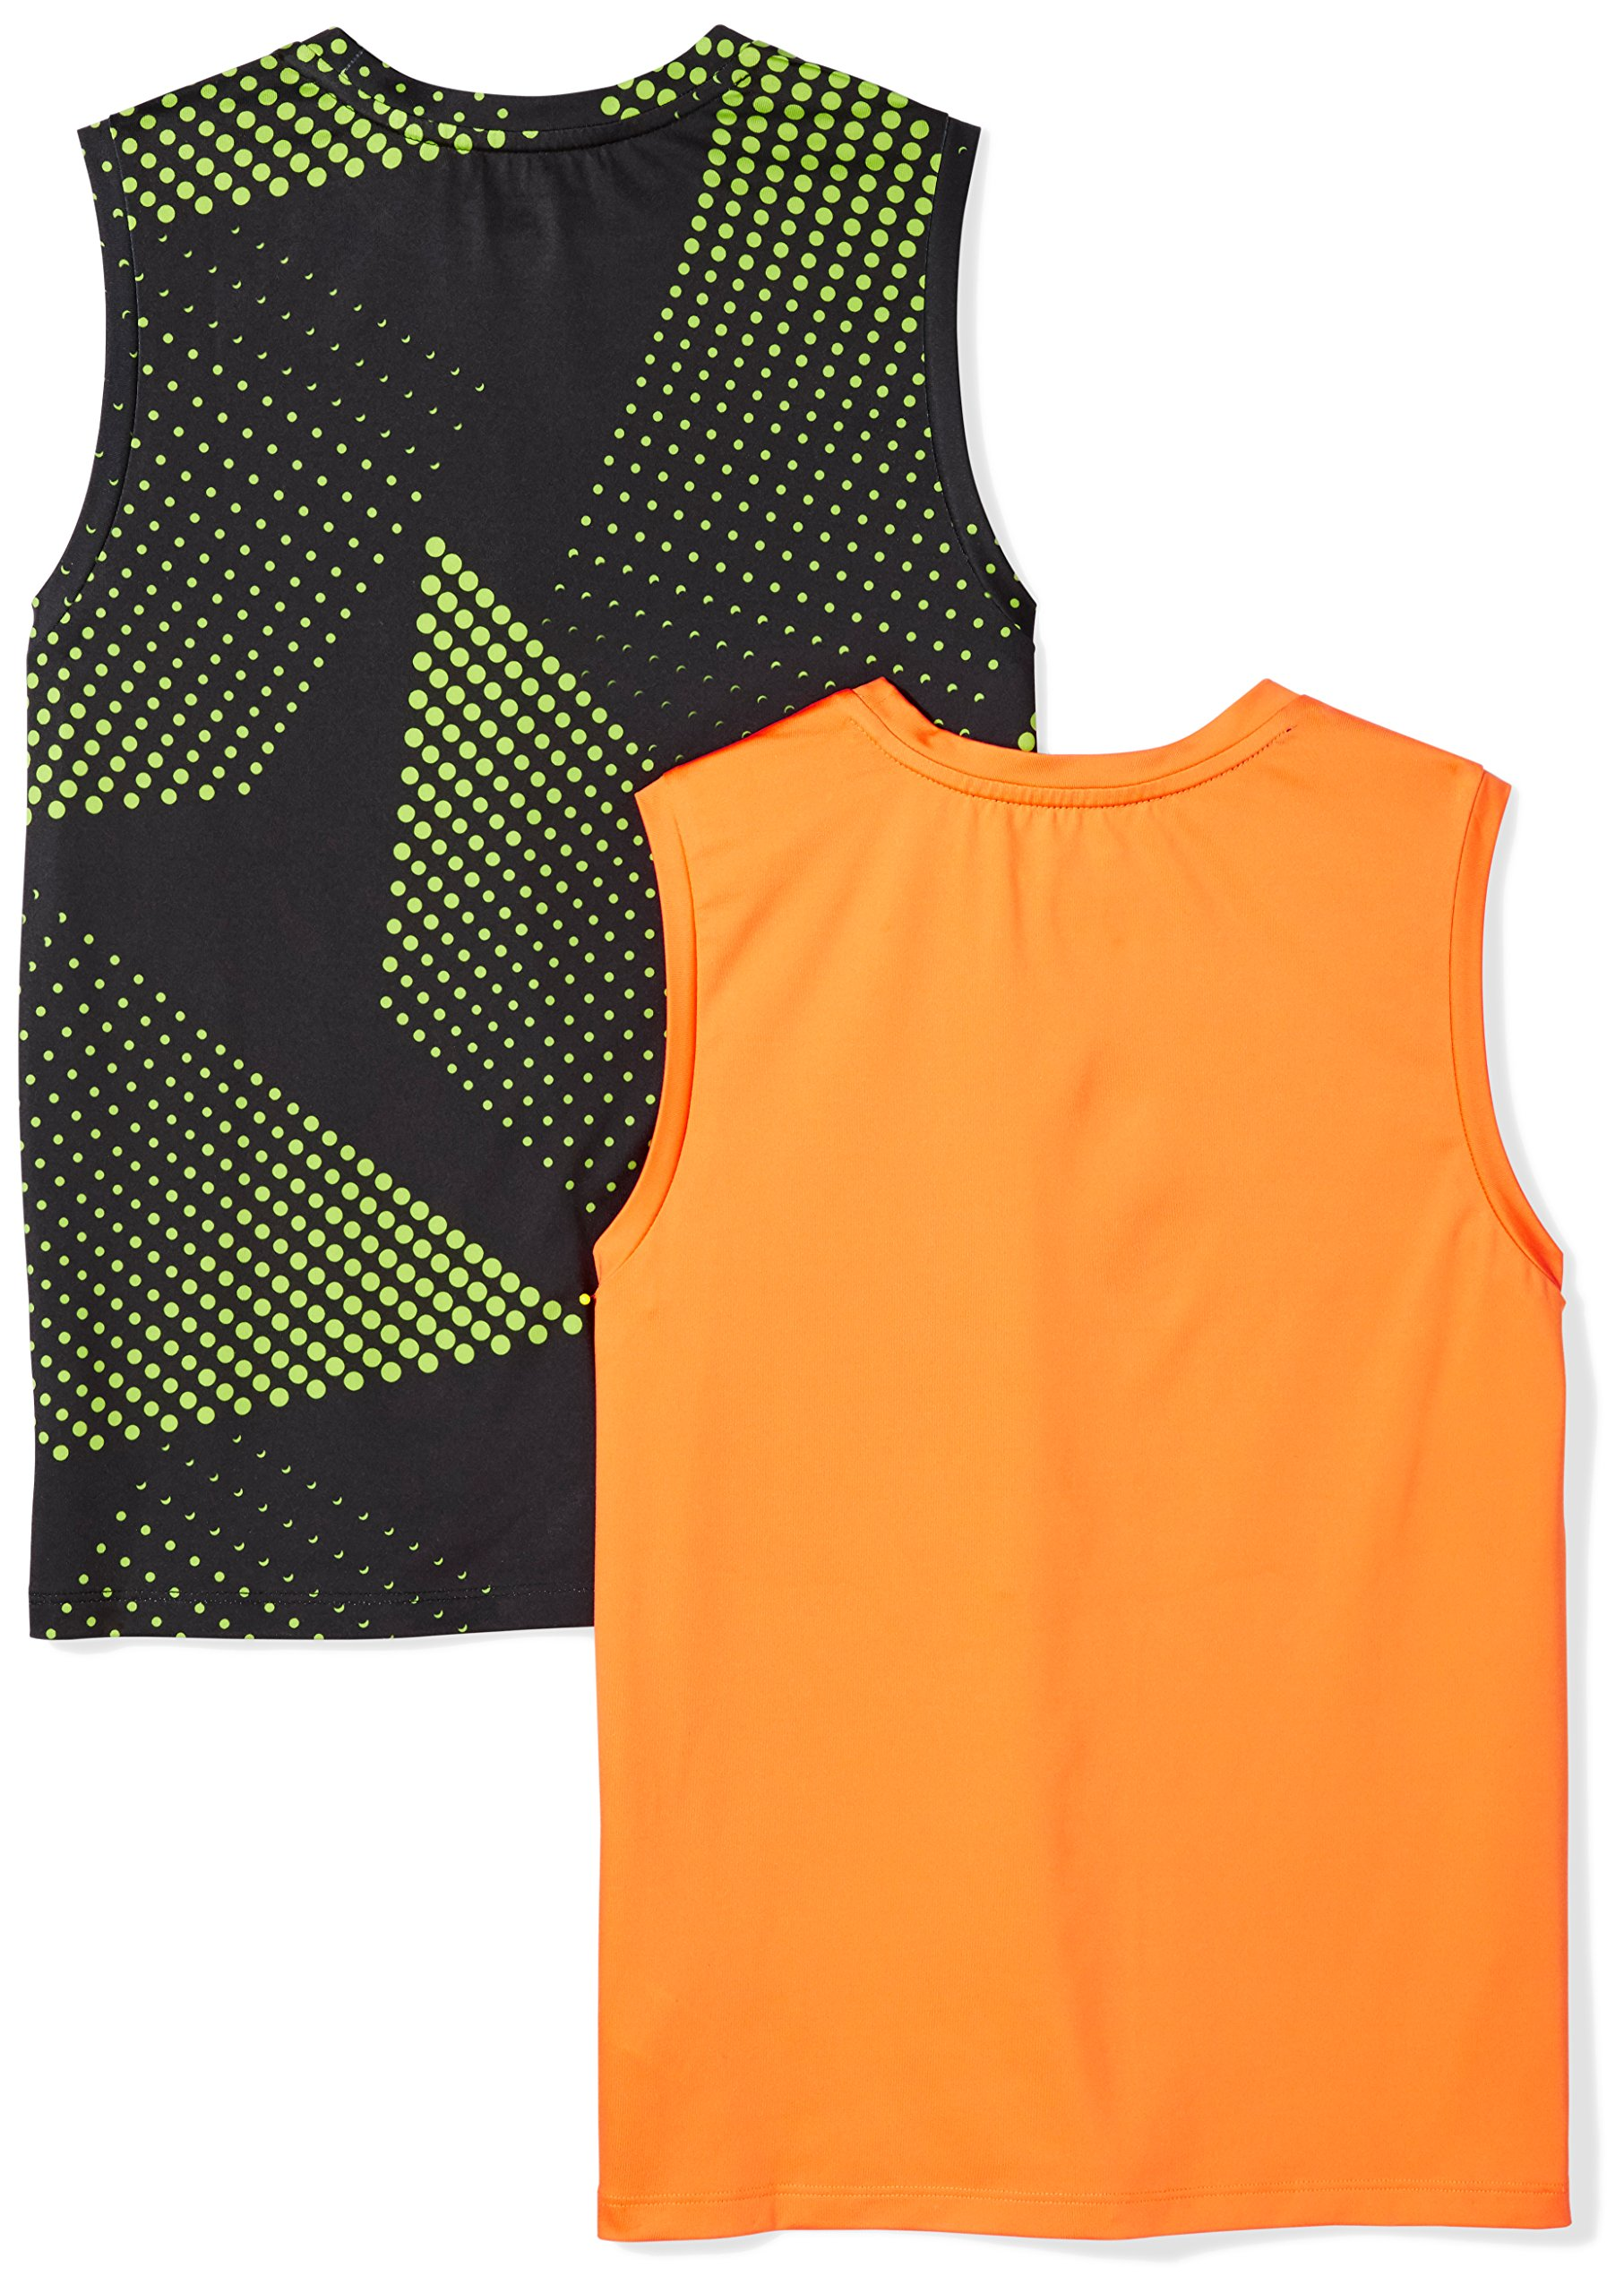 Amazon Essentials Boys' 2-Pack Active Muscle Tank, Gradient/Orange, M by Amazon Essentials (Image #3)